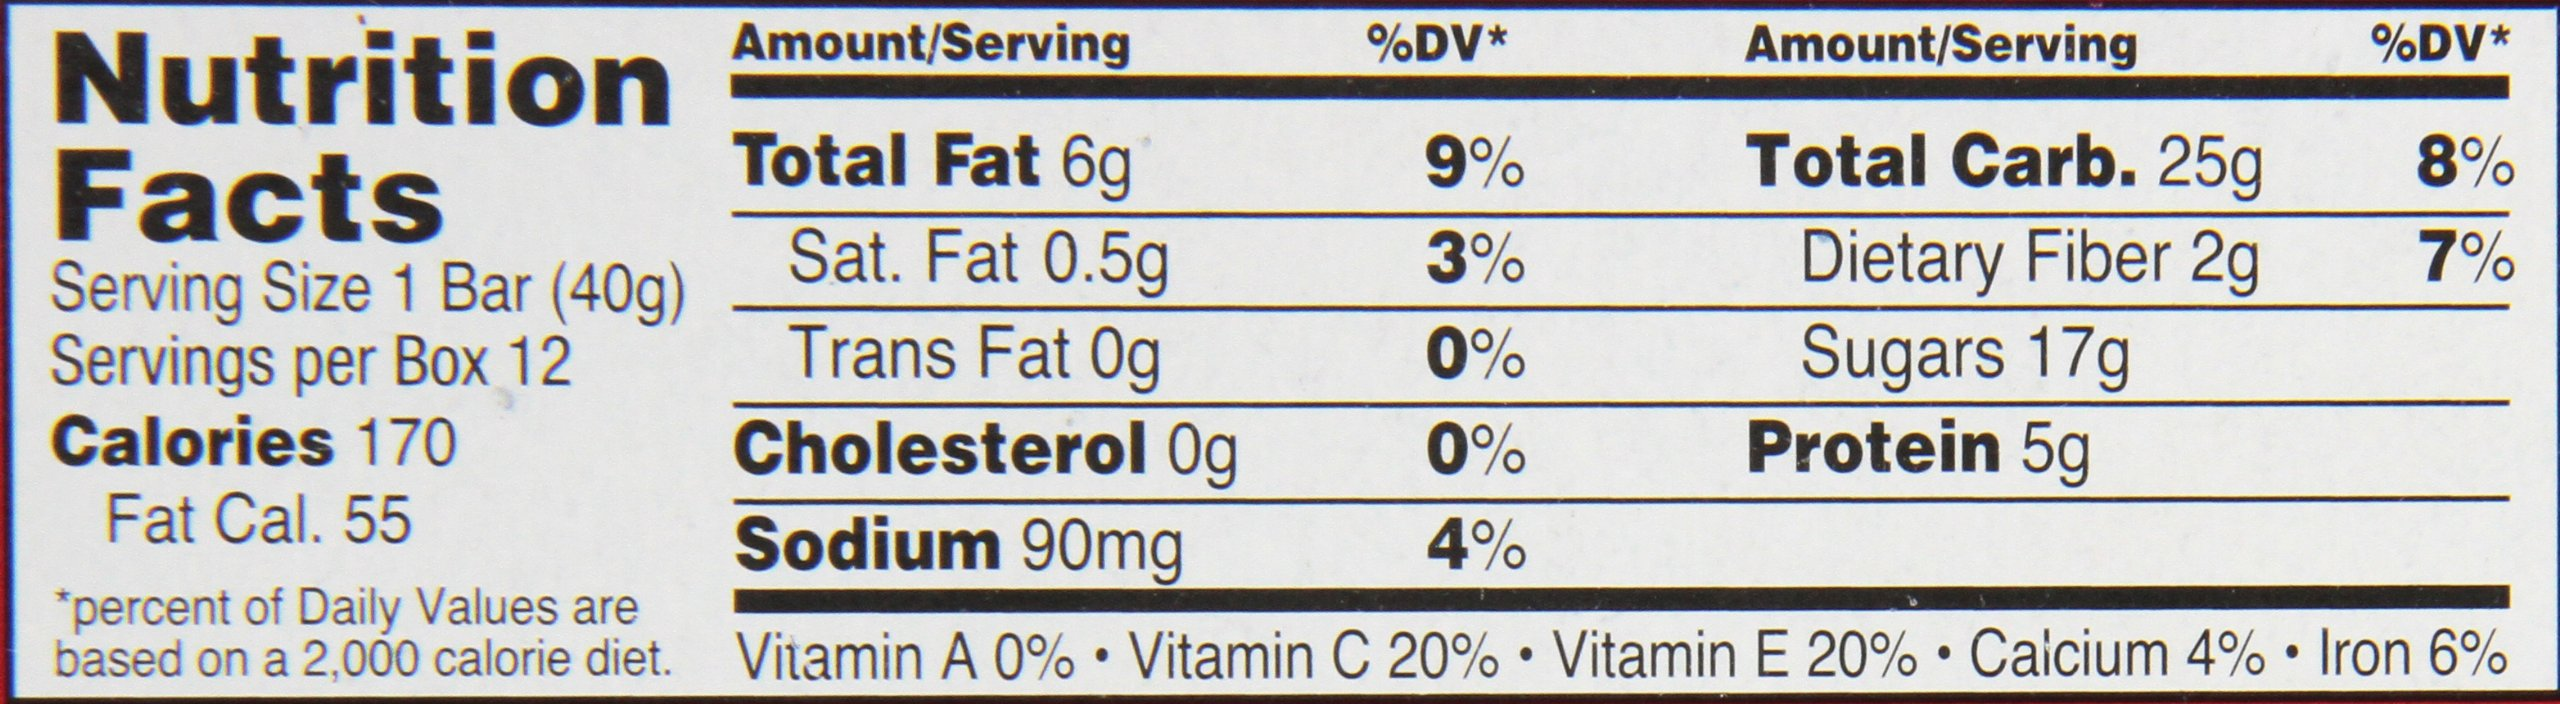 Orchard Bars Fruit and Nut Bar, Strawberry/Raspberry/Walnut, 1.4 Ounce (Pack of 12) by Orchard Bars (Image #2)